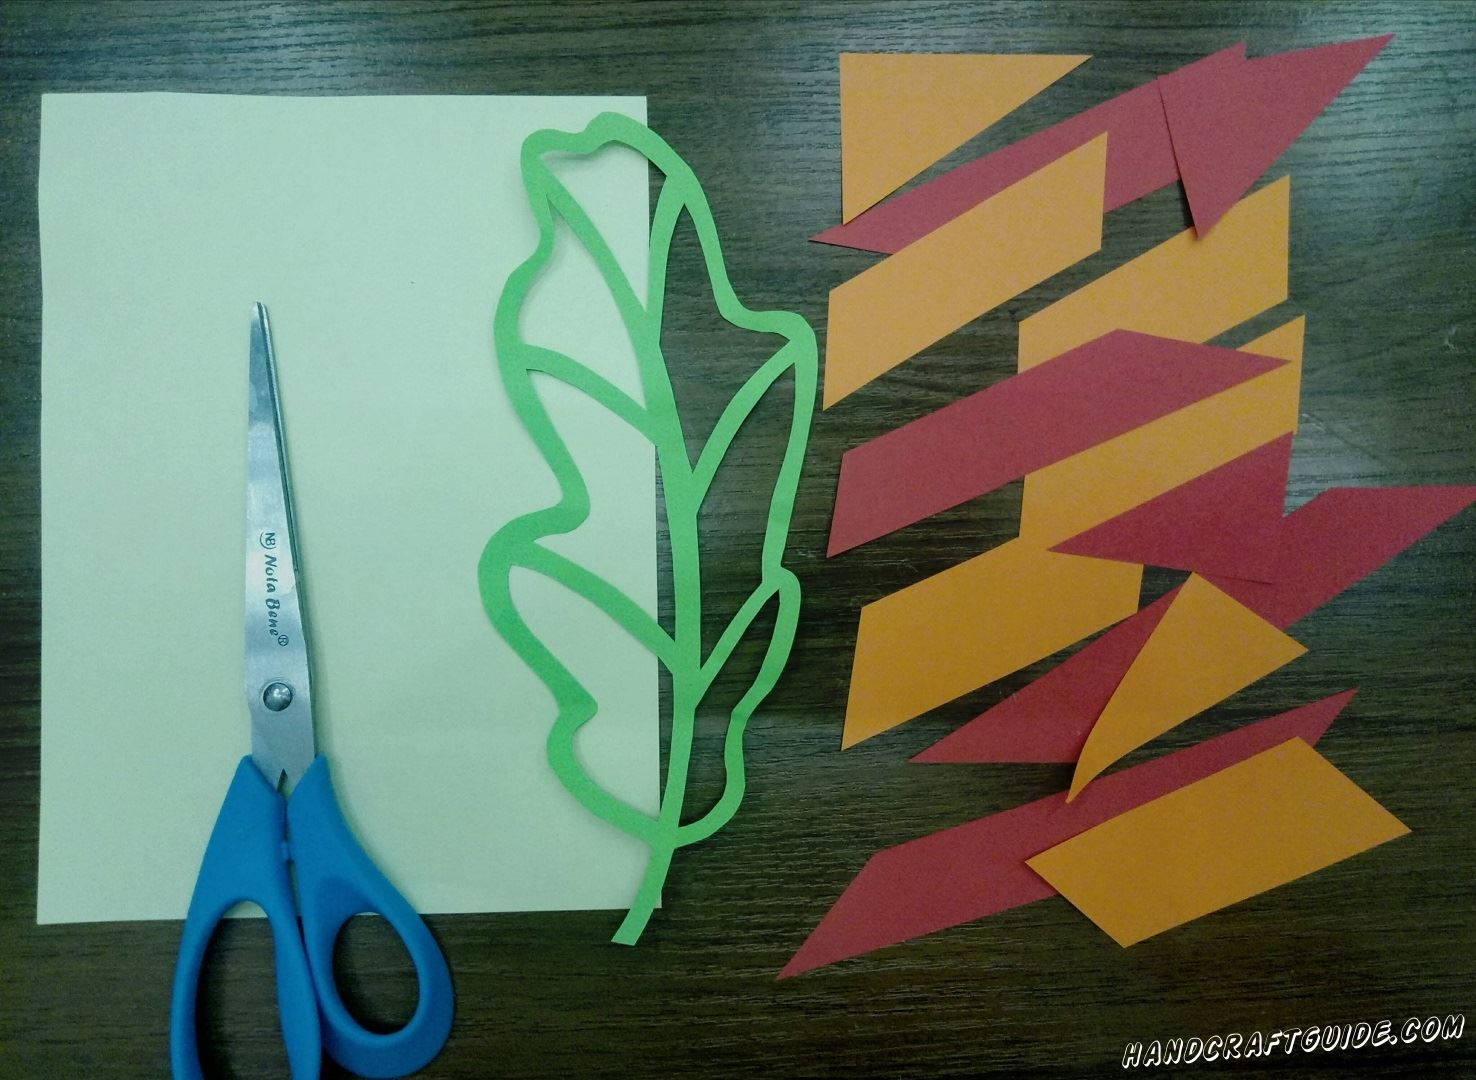 First, we need to cut out a green leaf, so that there is hole inside. The leaf should consist only of connected strips. If you can't do it with scissors, you can use an office knife. Next cut many different details of triangular and quadrangular shapes out of orange and red paper.